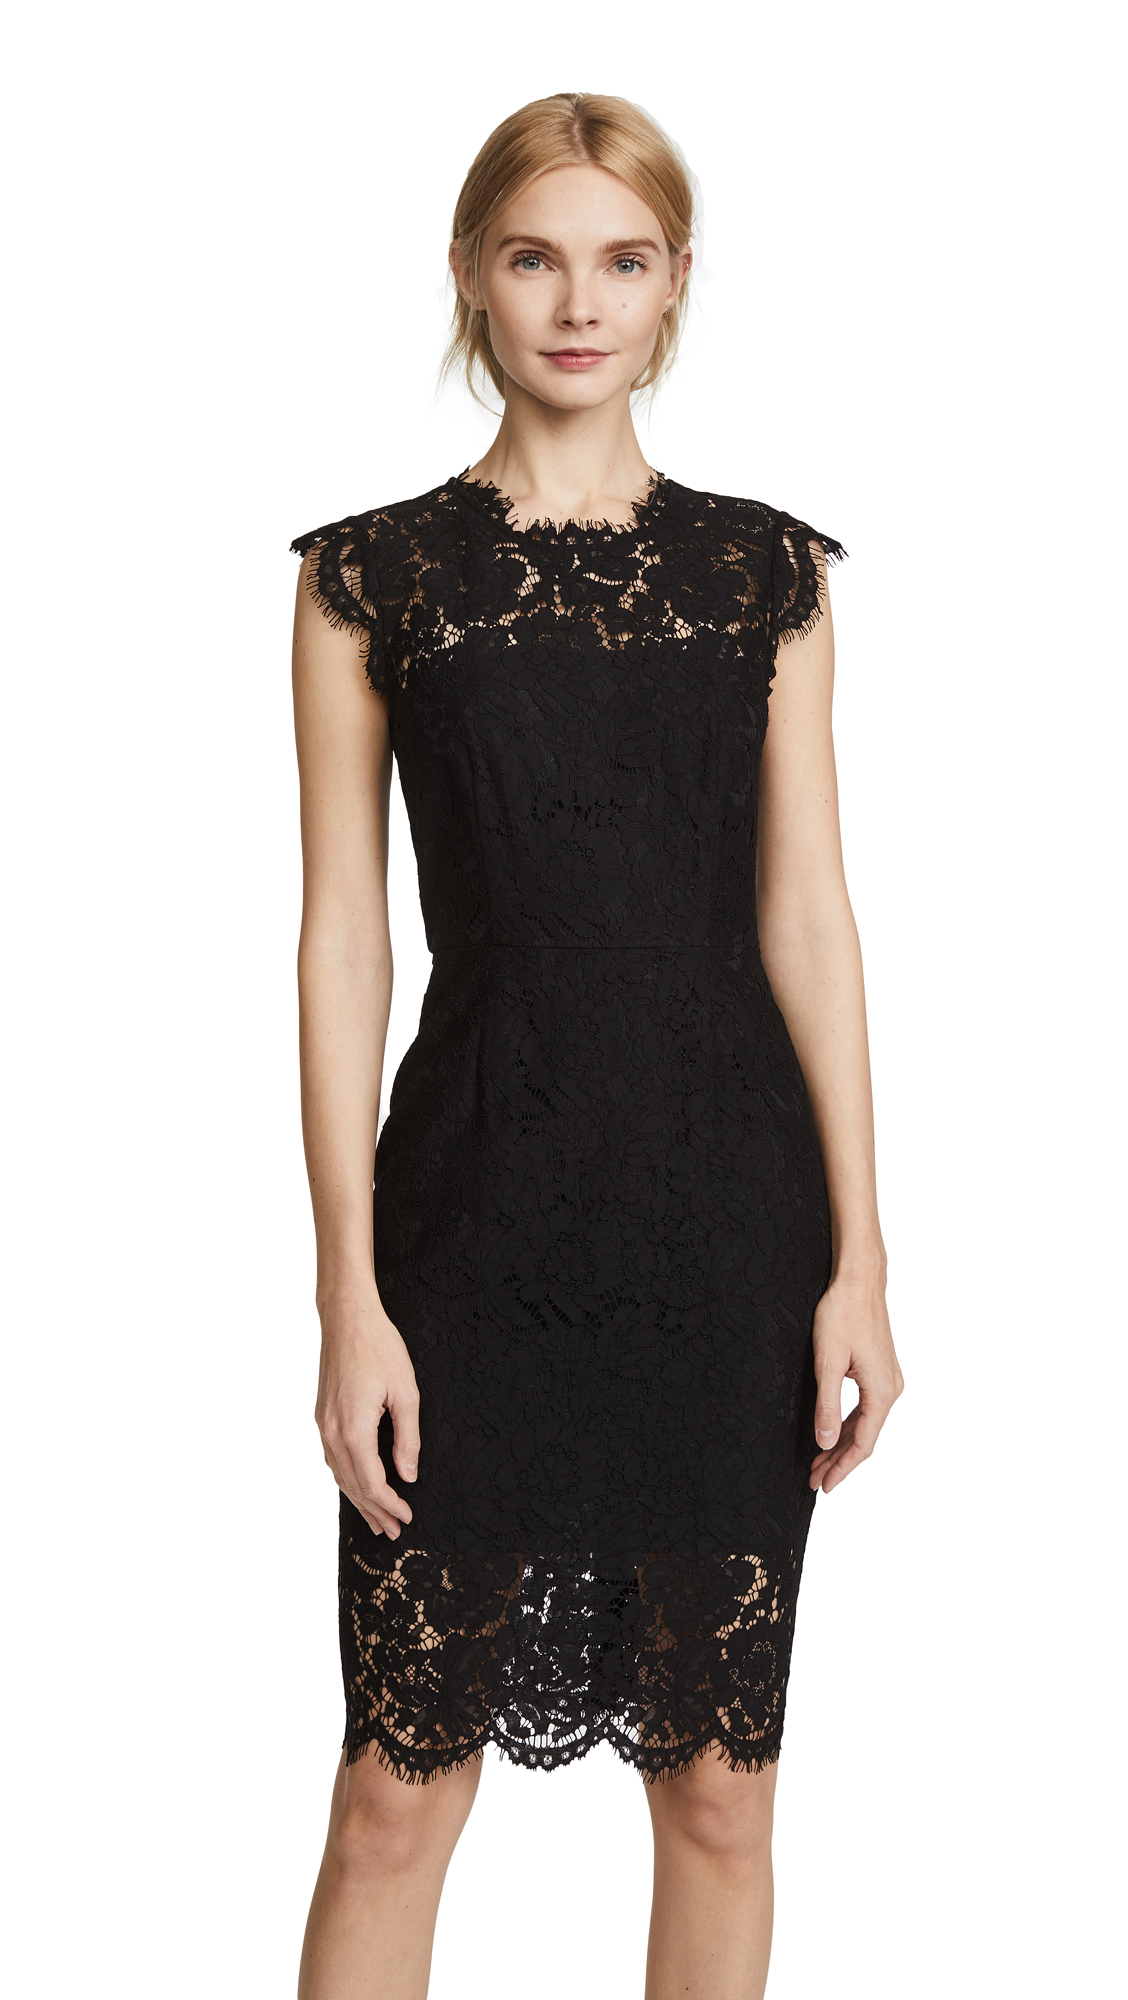 Rachel Zoe Suzette Fitted Dress In Black